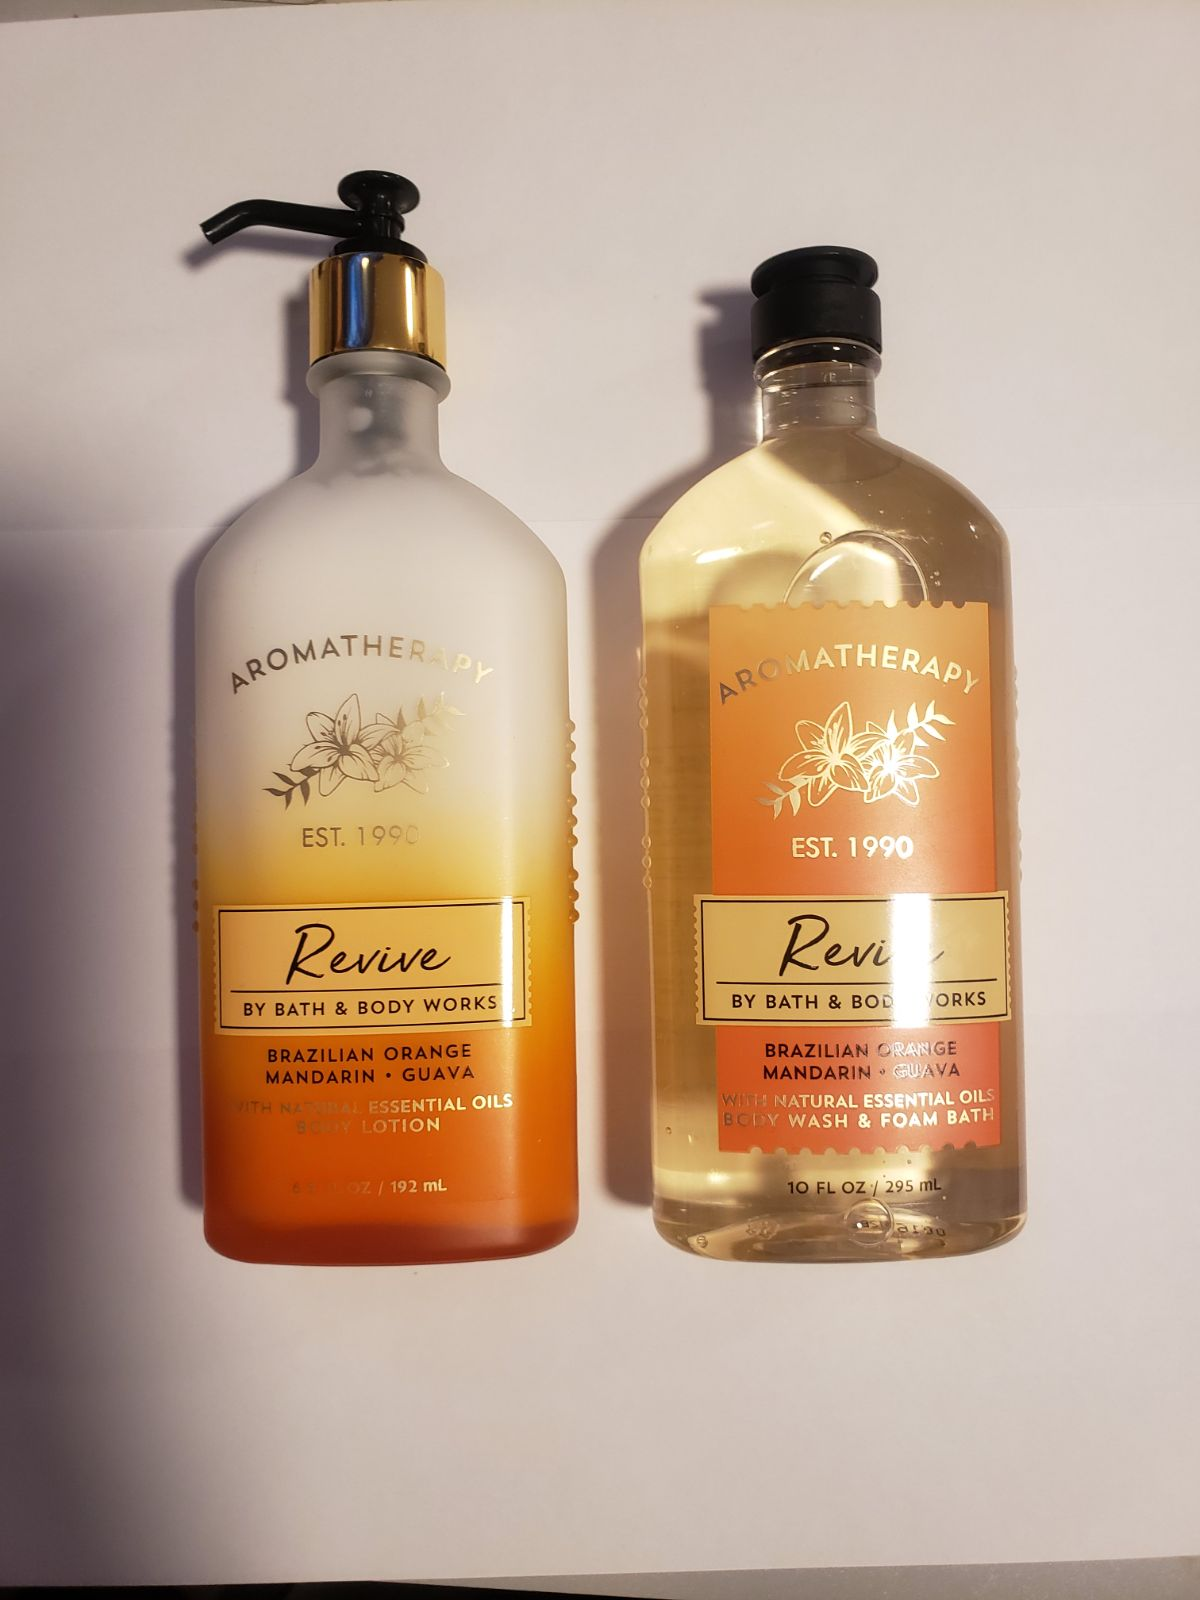 Bath and Body Works Aromatherapy Revive